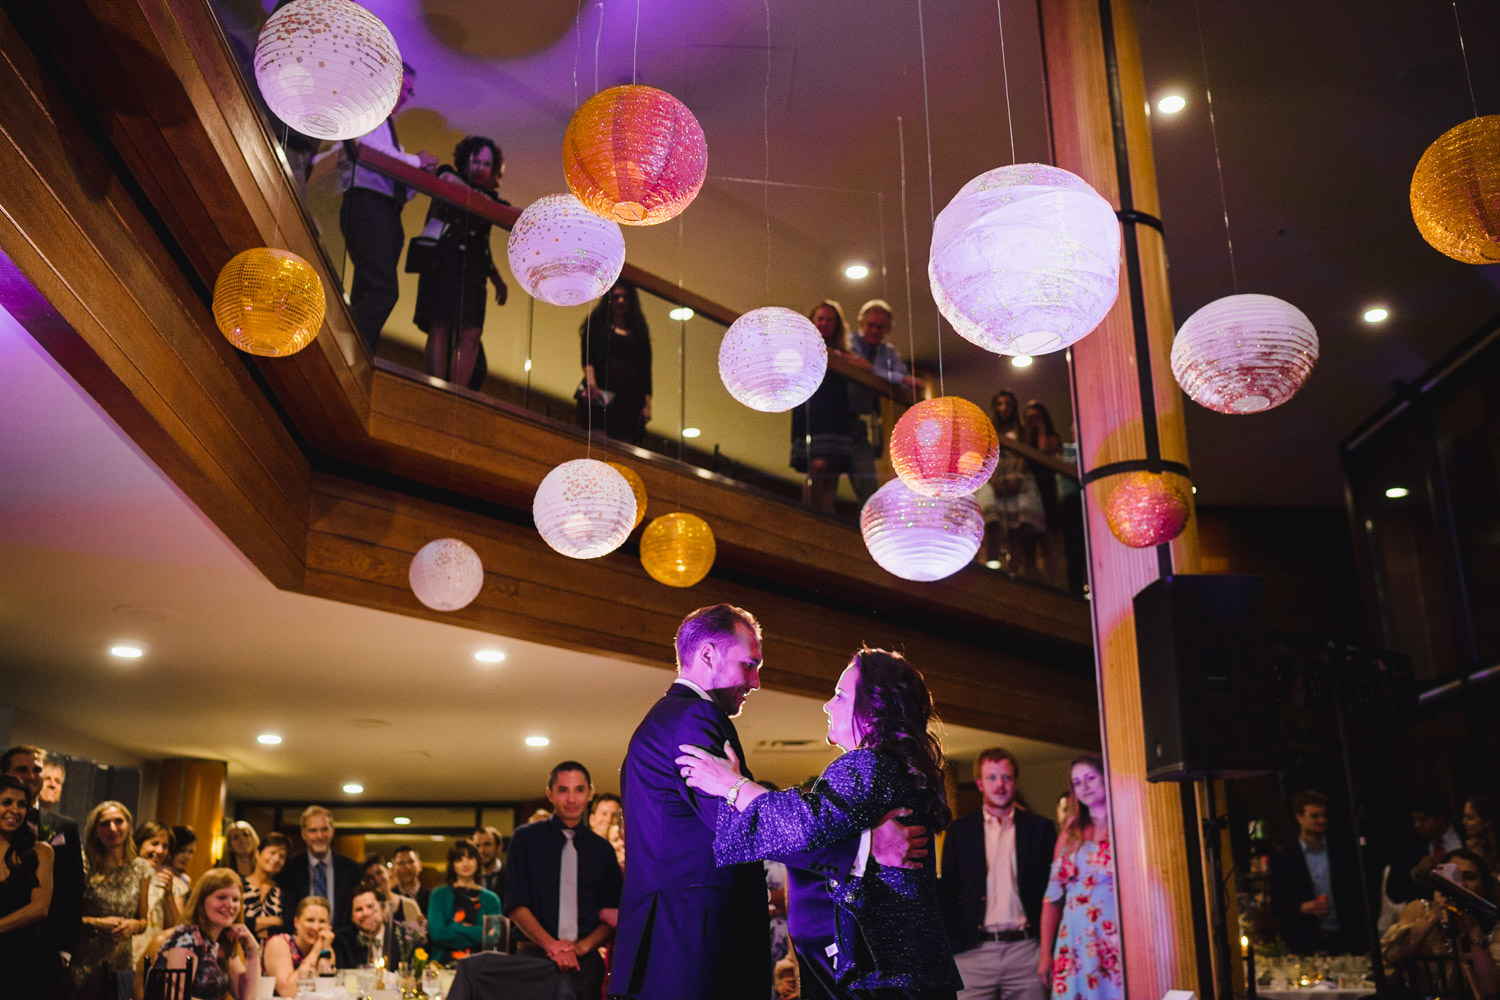 Wedding at Snowbird Cliff Lodge colorful paper lanterns over dance floor photo